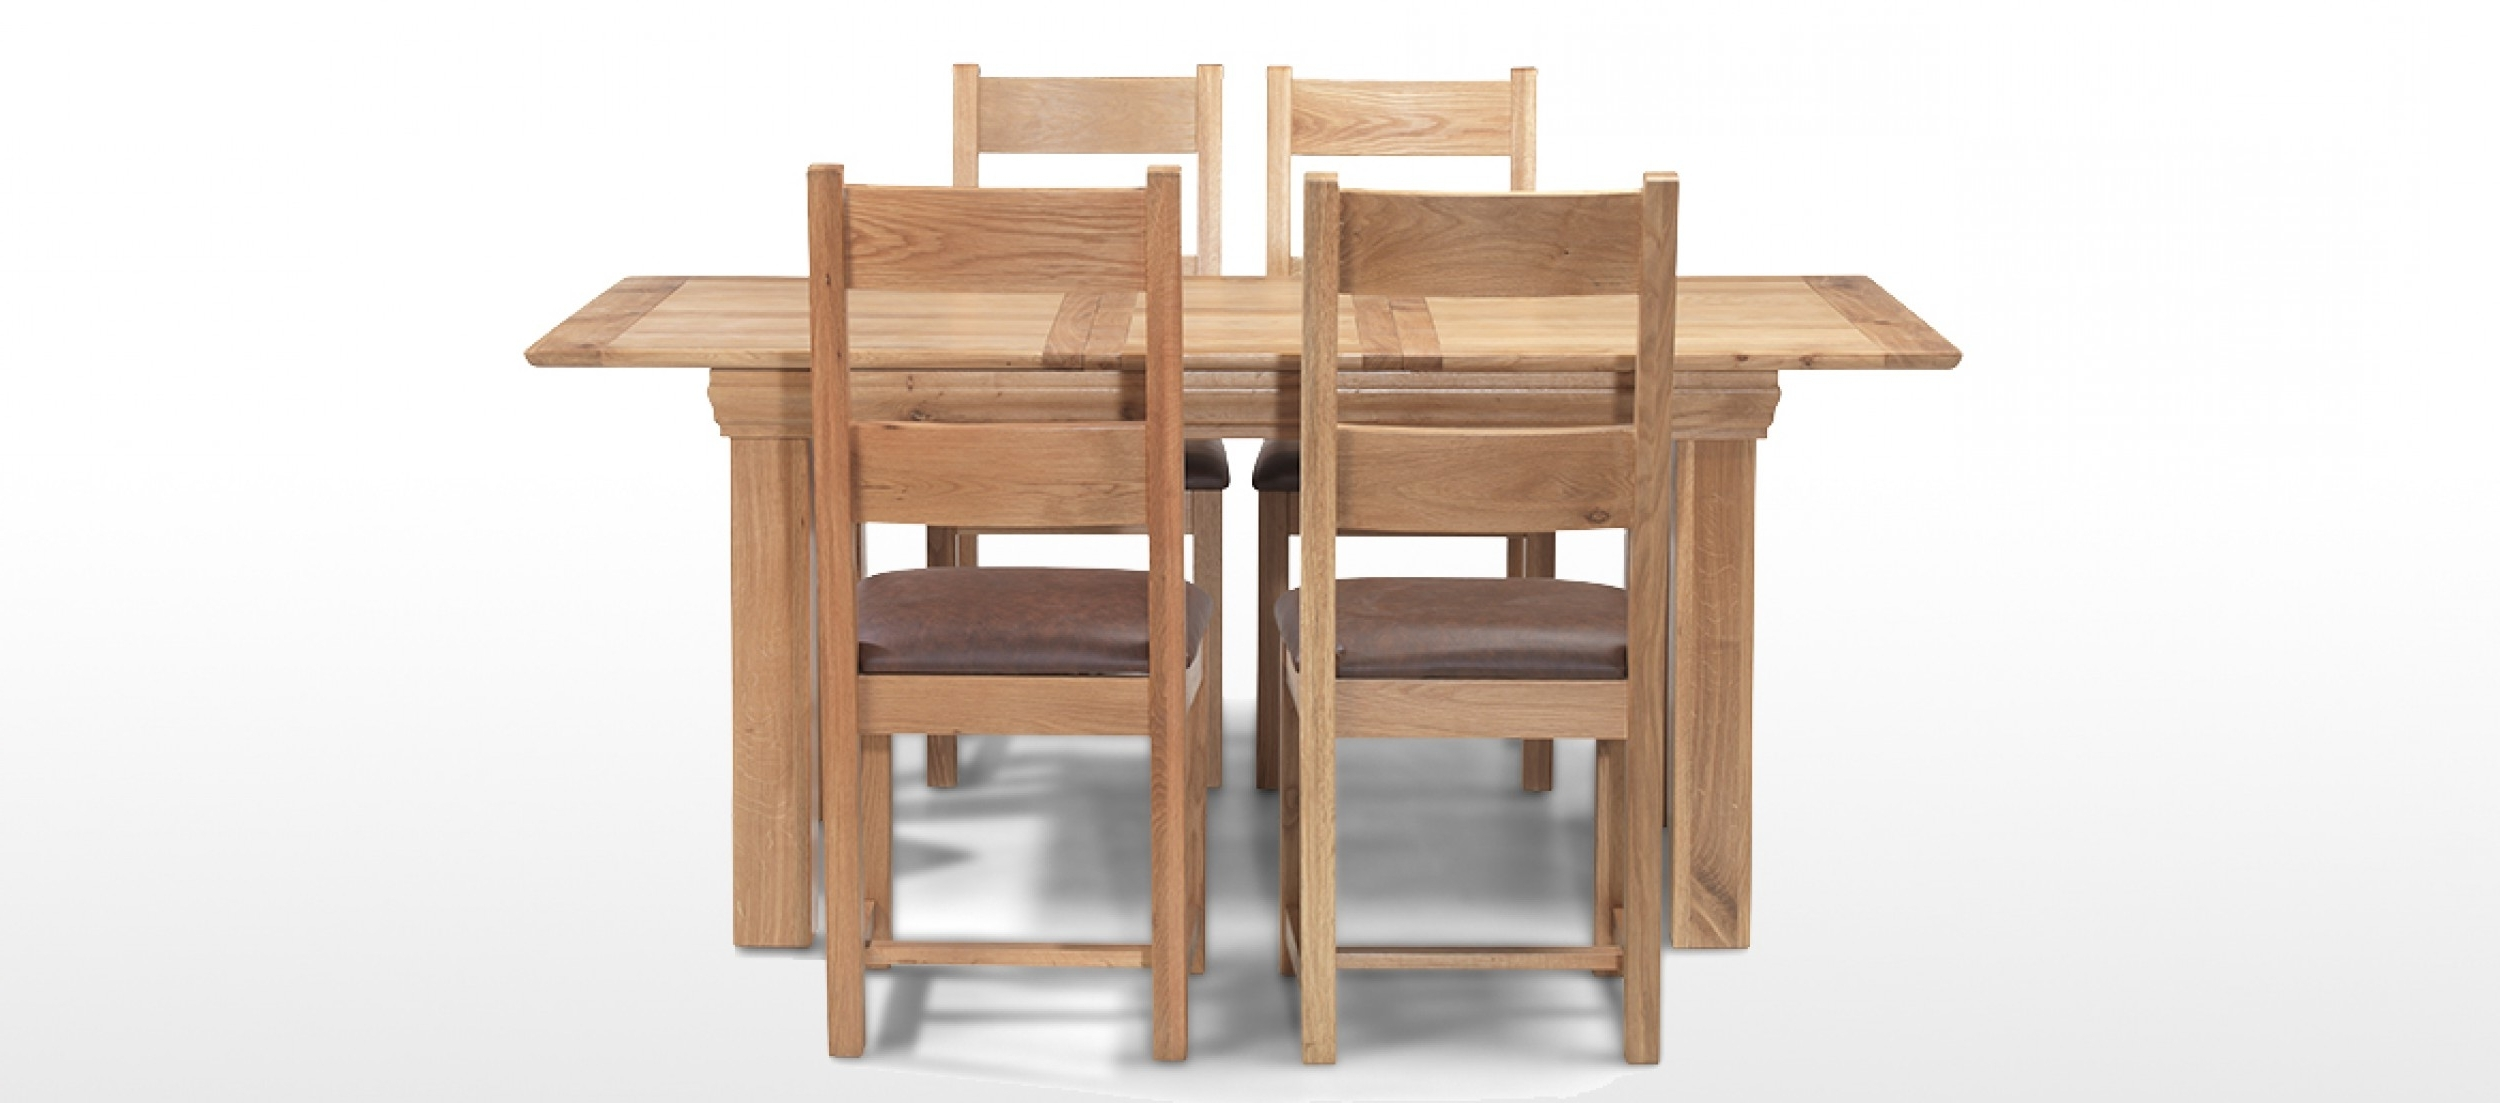 Oak Extending Dining Tables And 4 Chairs For 2018 Constance Oak 140 180 Cm Extending Dining Table And 4 Chairs (View 10 of 25)